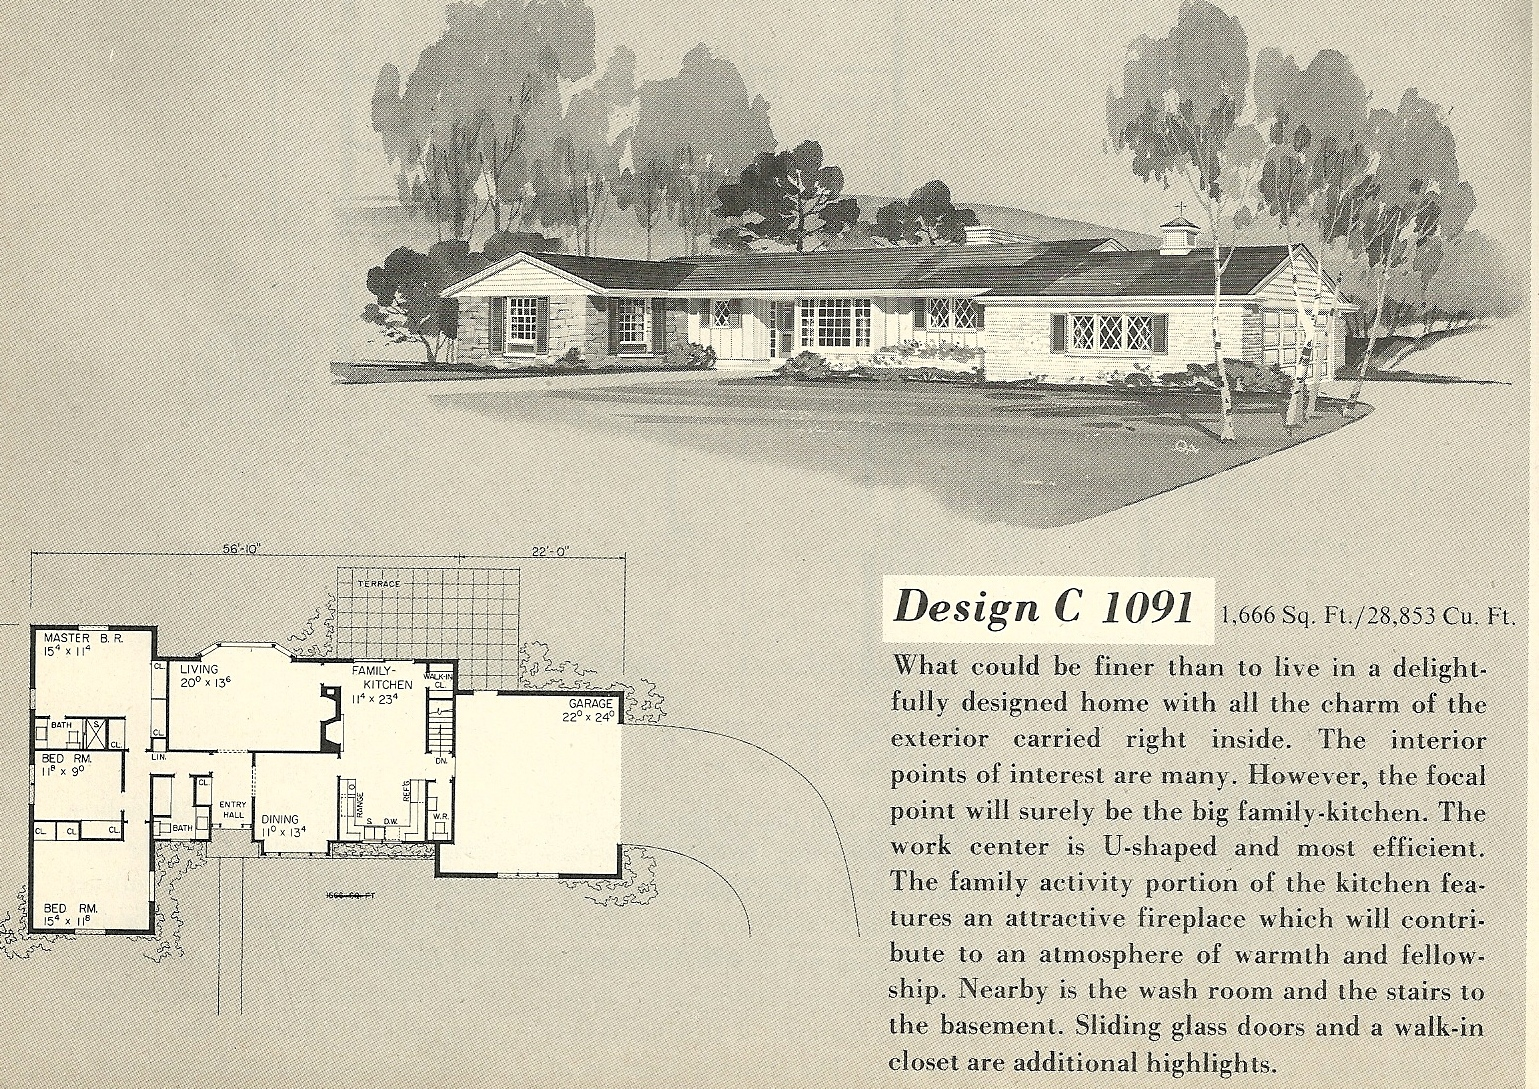 vintage house plans 1091 - Vintage Farmhouse Plans